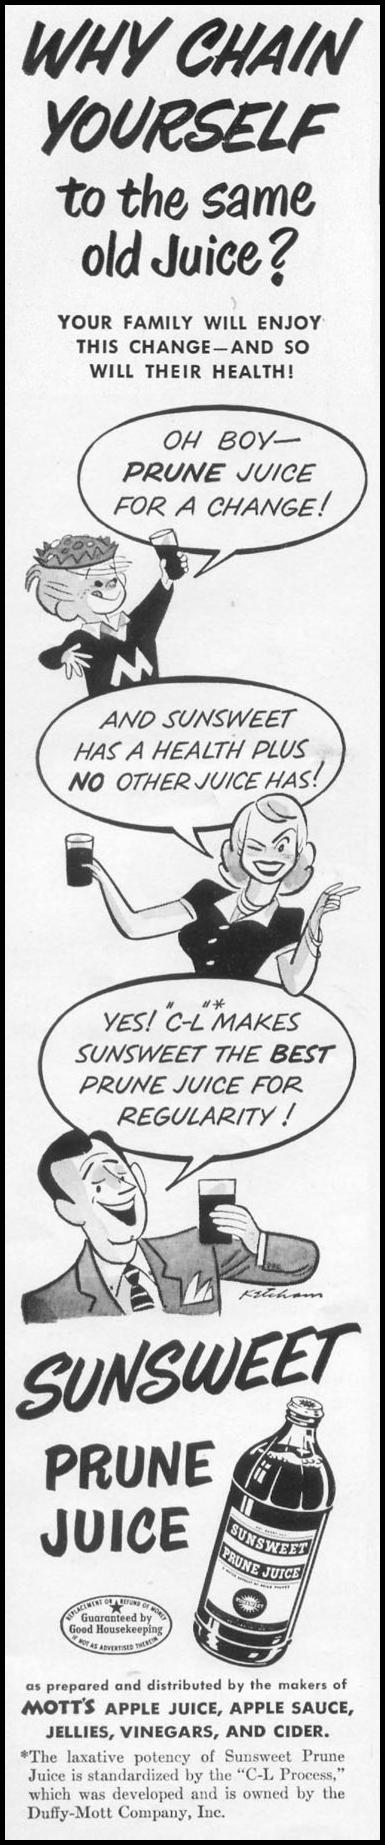 SUNSWEET PRUNE JUICE LIFE 06/05/1950 p. 48